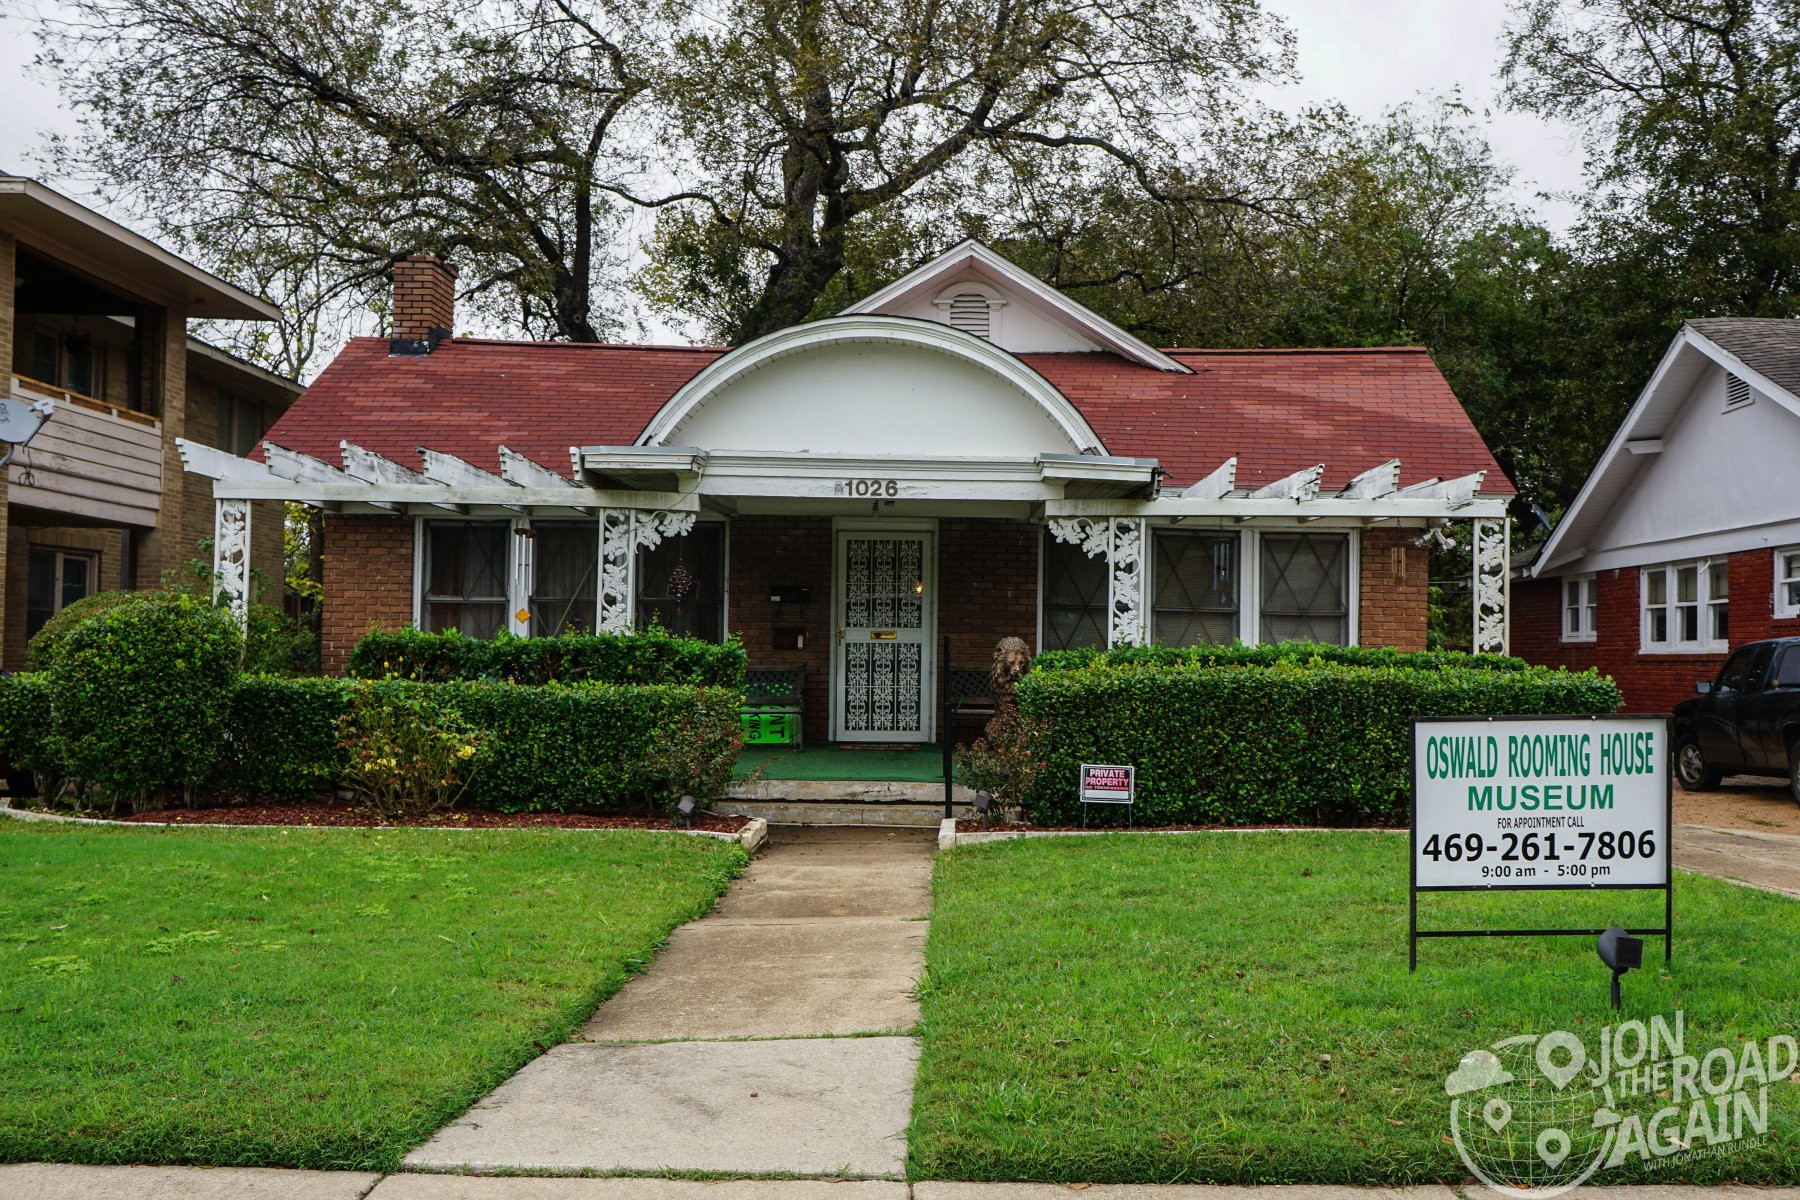 Oswald Rooming House